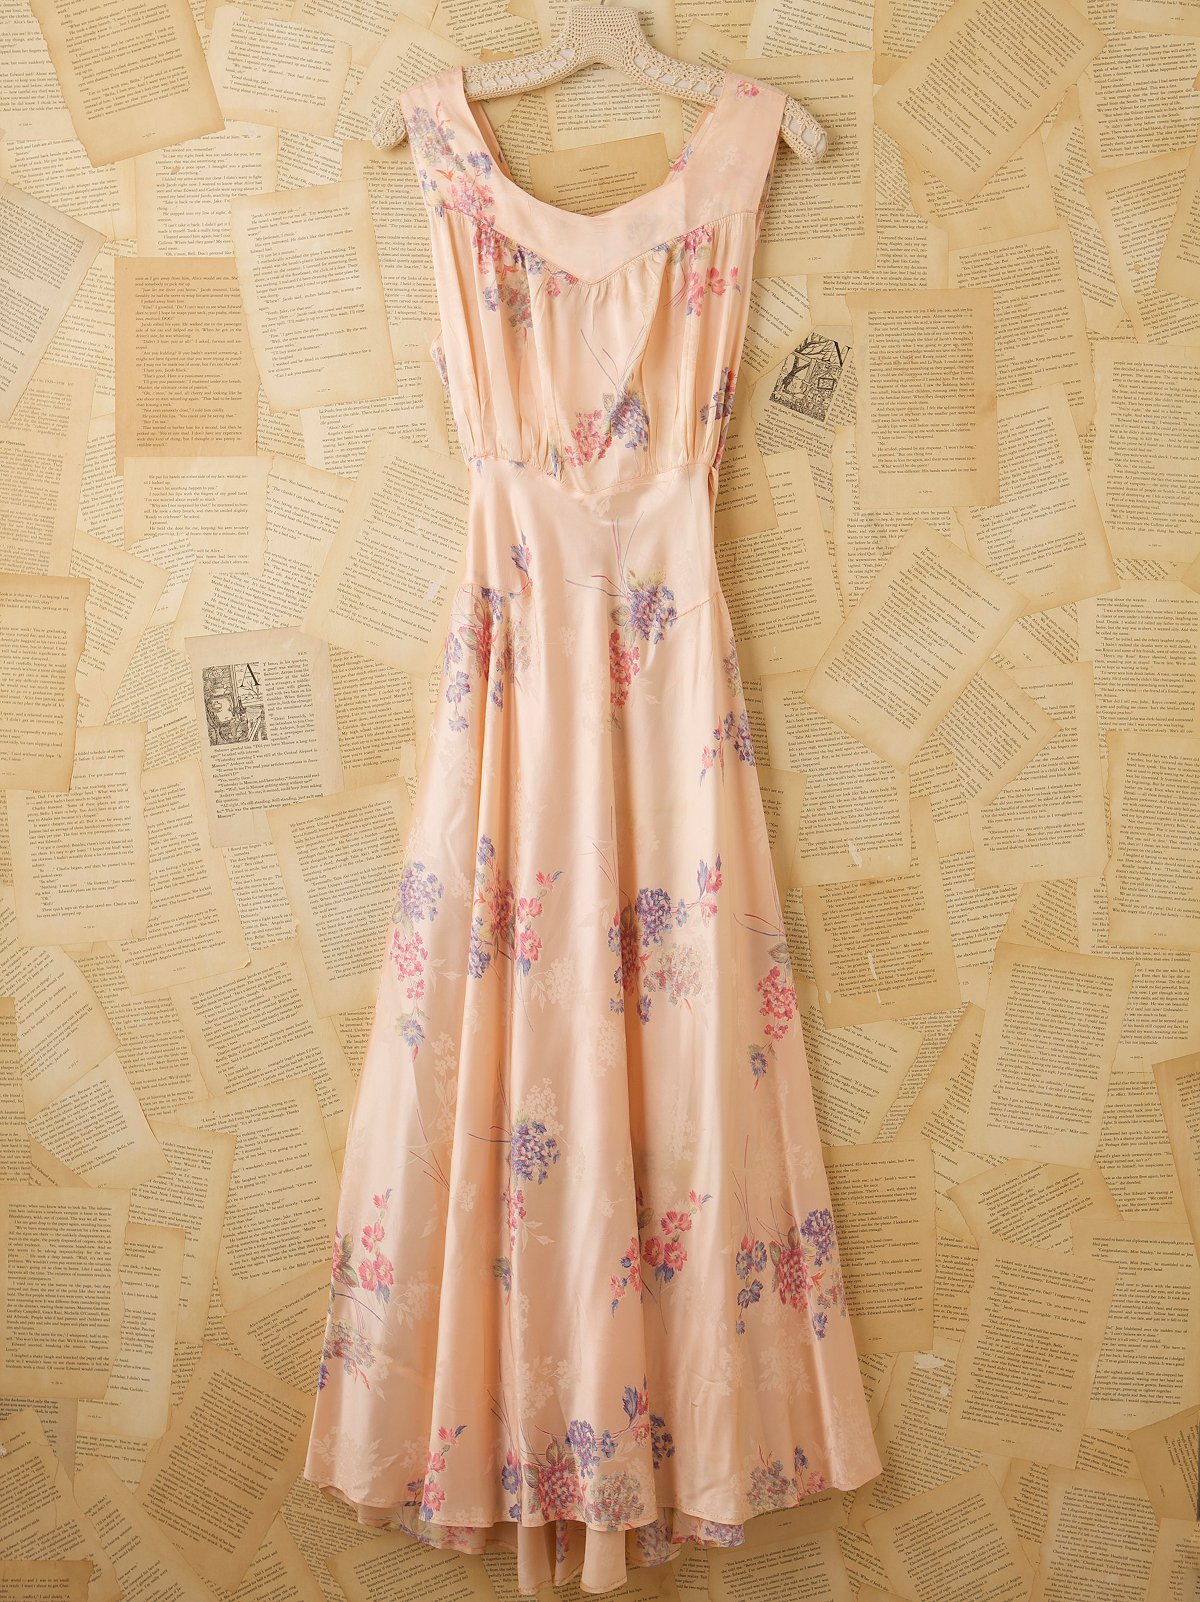 Vintage Printed Slip Dress